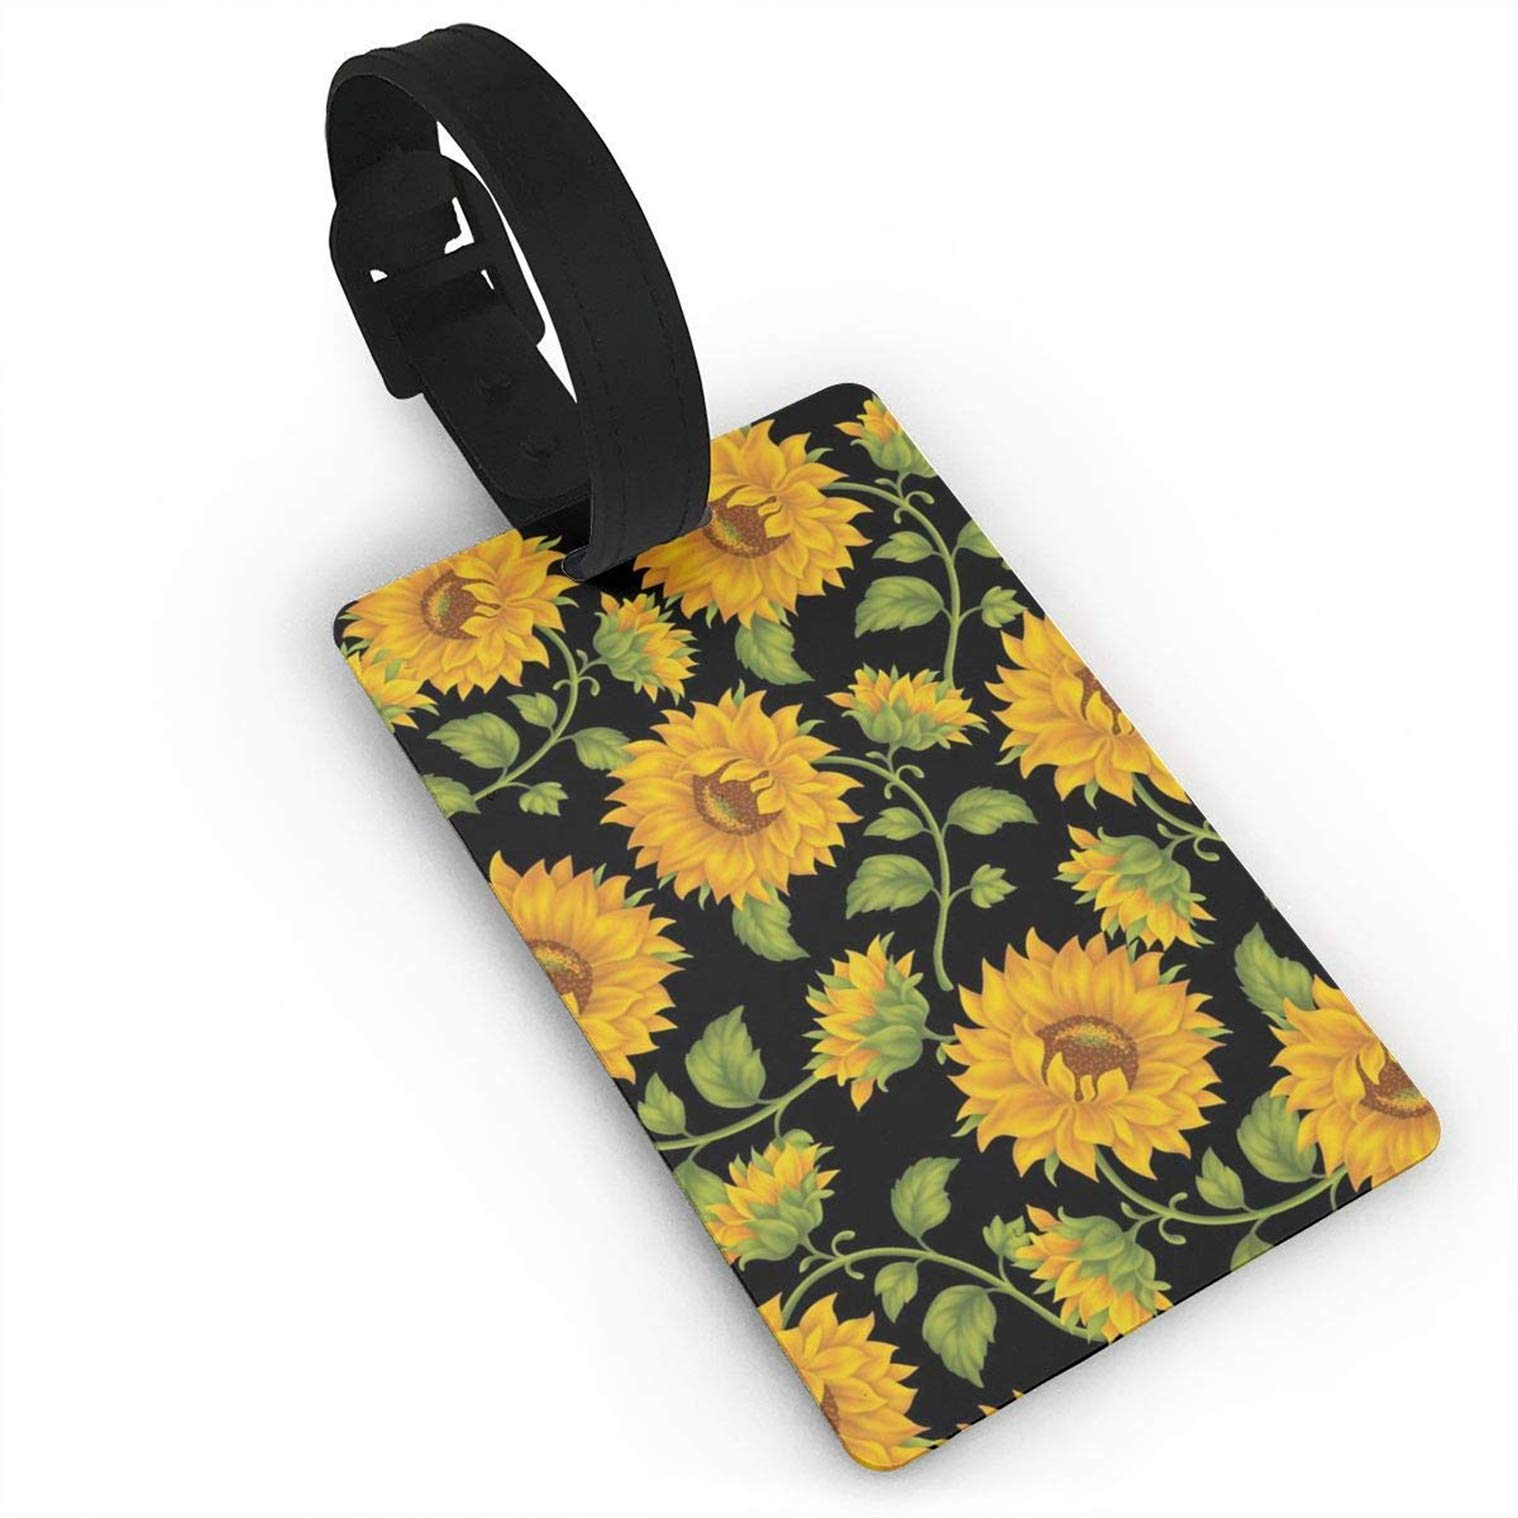 Beautiful Sunflowe.jpg,Label Cruise Instrument Bag Case Tags Travel Luggage Tag ID Identification Labels by HOTSELL-Makemoney.forever